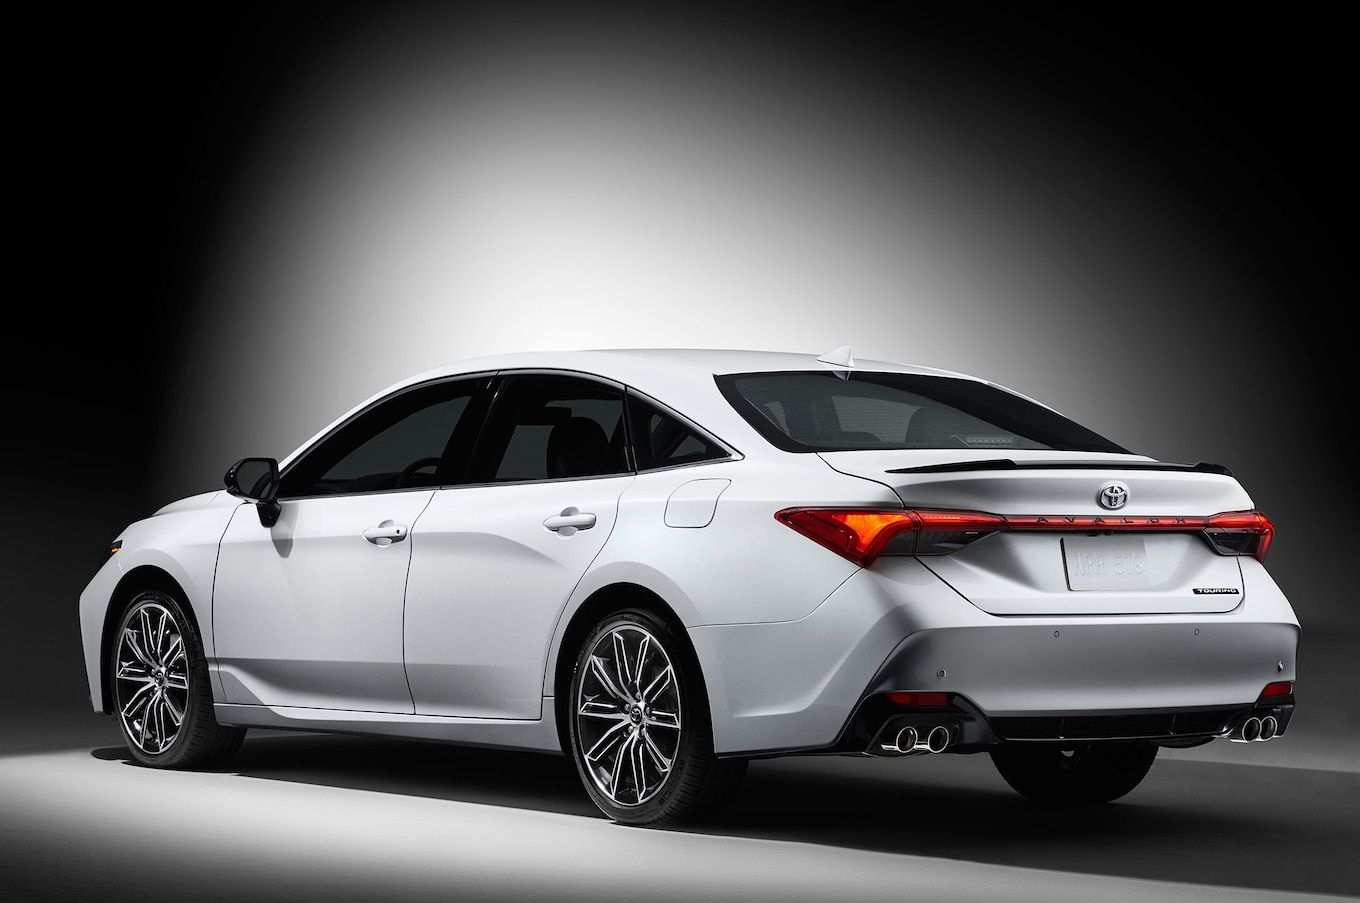 67 Gallery of 2020 Toyota Avalon Brochure Exterior with 2020 Toyota Avalon Brochure